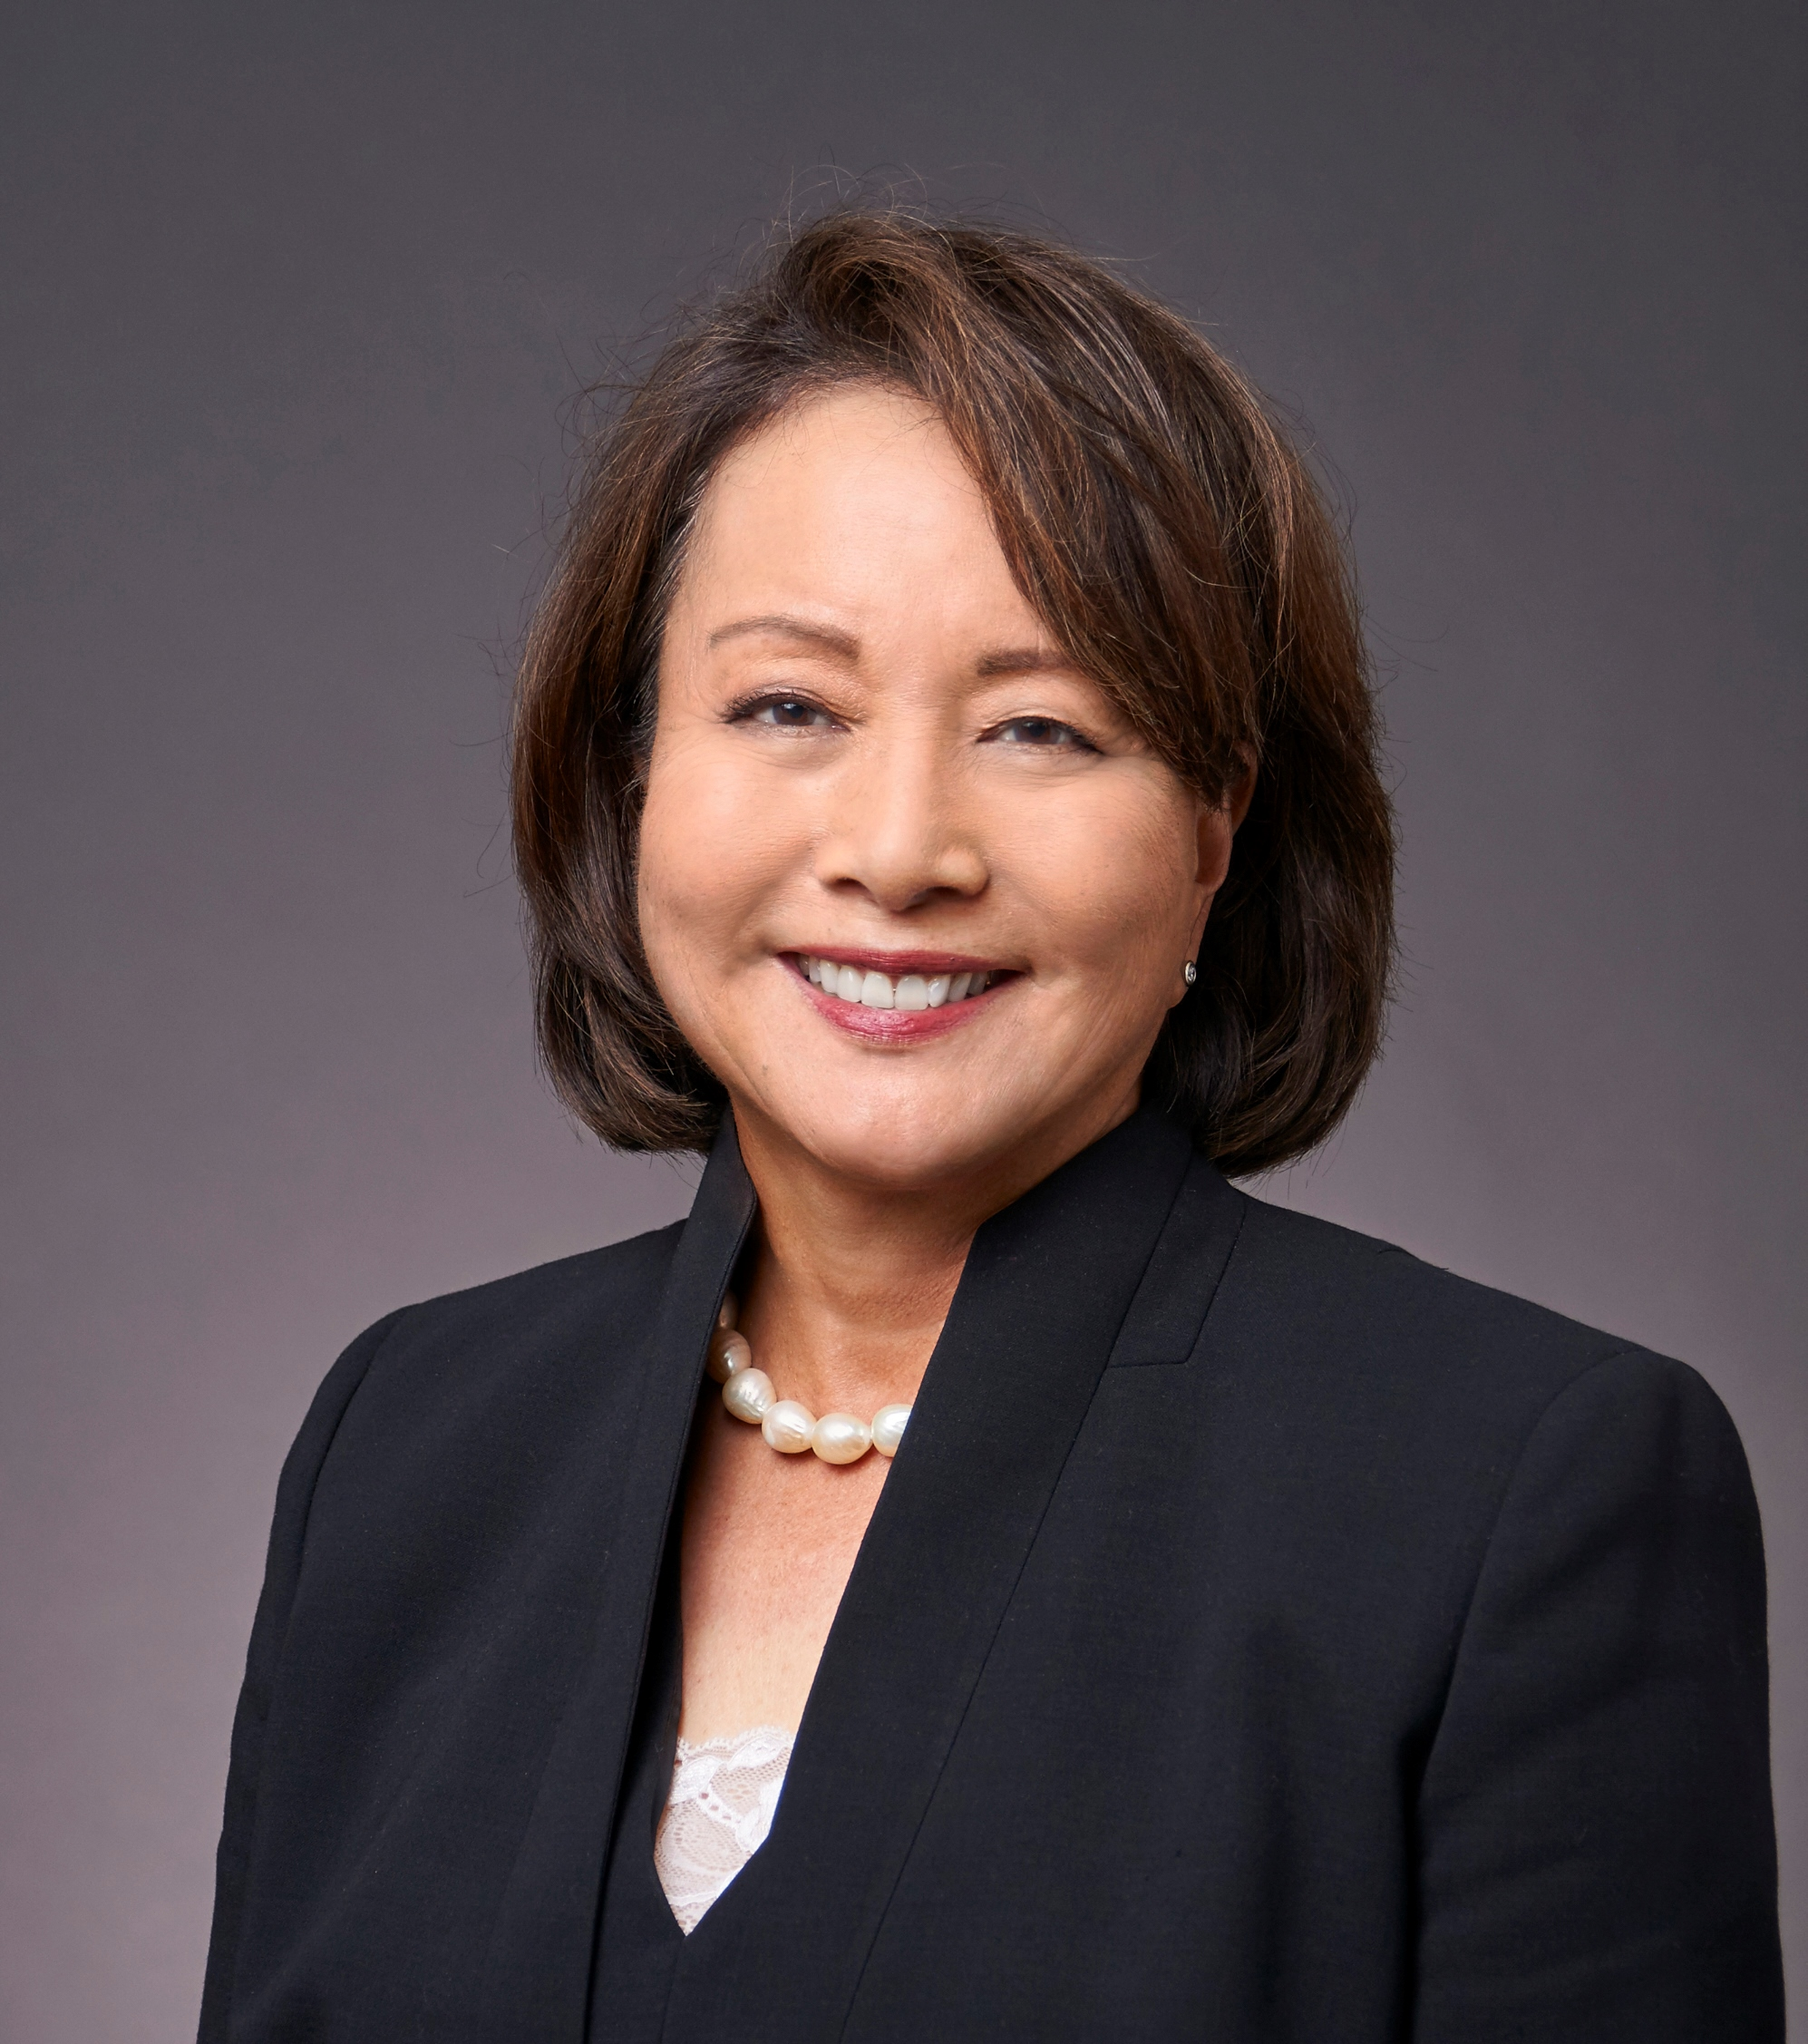 Phyllis J. Campbell - Independent Director, Alaska Air Group; Chairman, Pacific Northwest, Vice Chairman, JPMorgan Chase & Co.